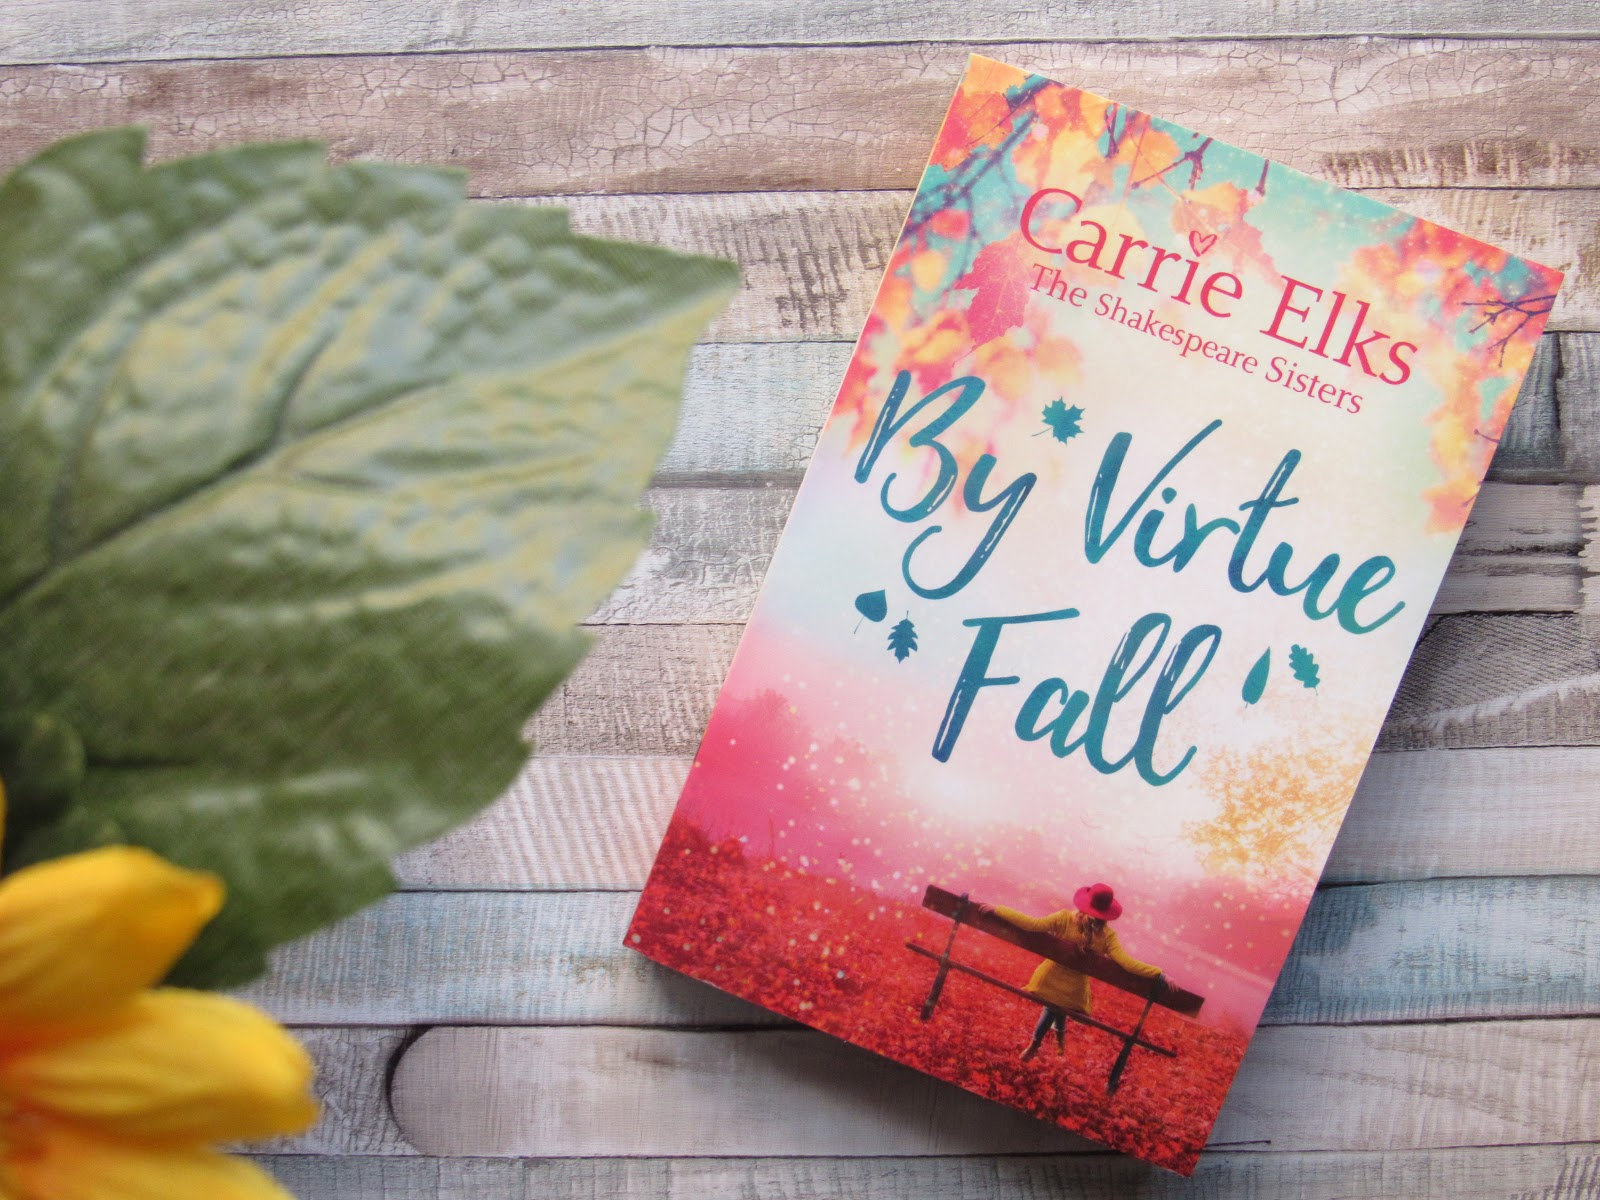 Paperback of By Virtue Fall by Carrie Elks